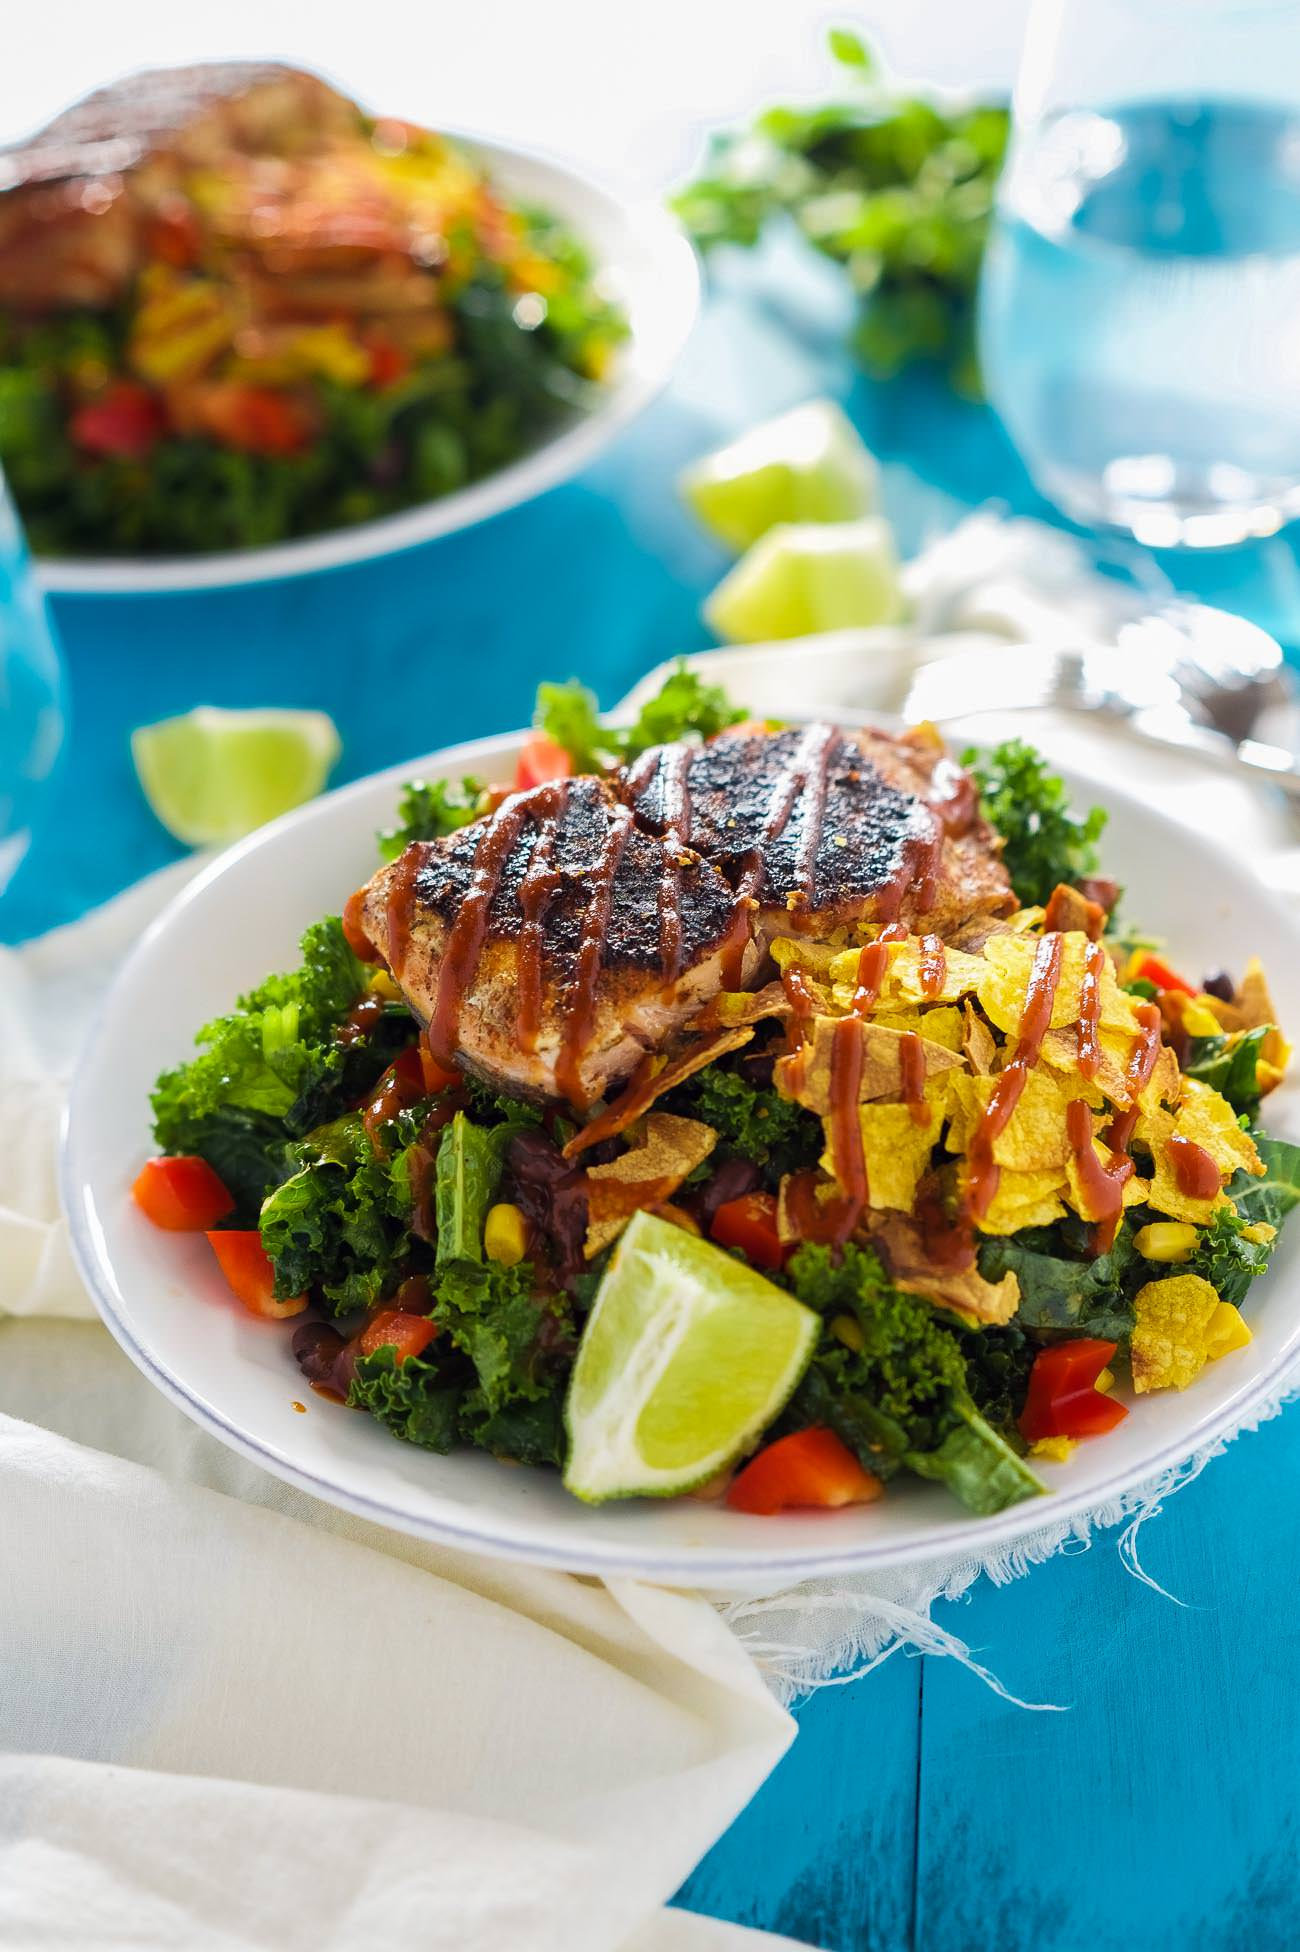 Bbq Salmon Kale Salad Is A Healthy And Updated Version Of The Classic Bbq Salad